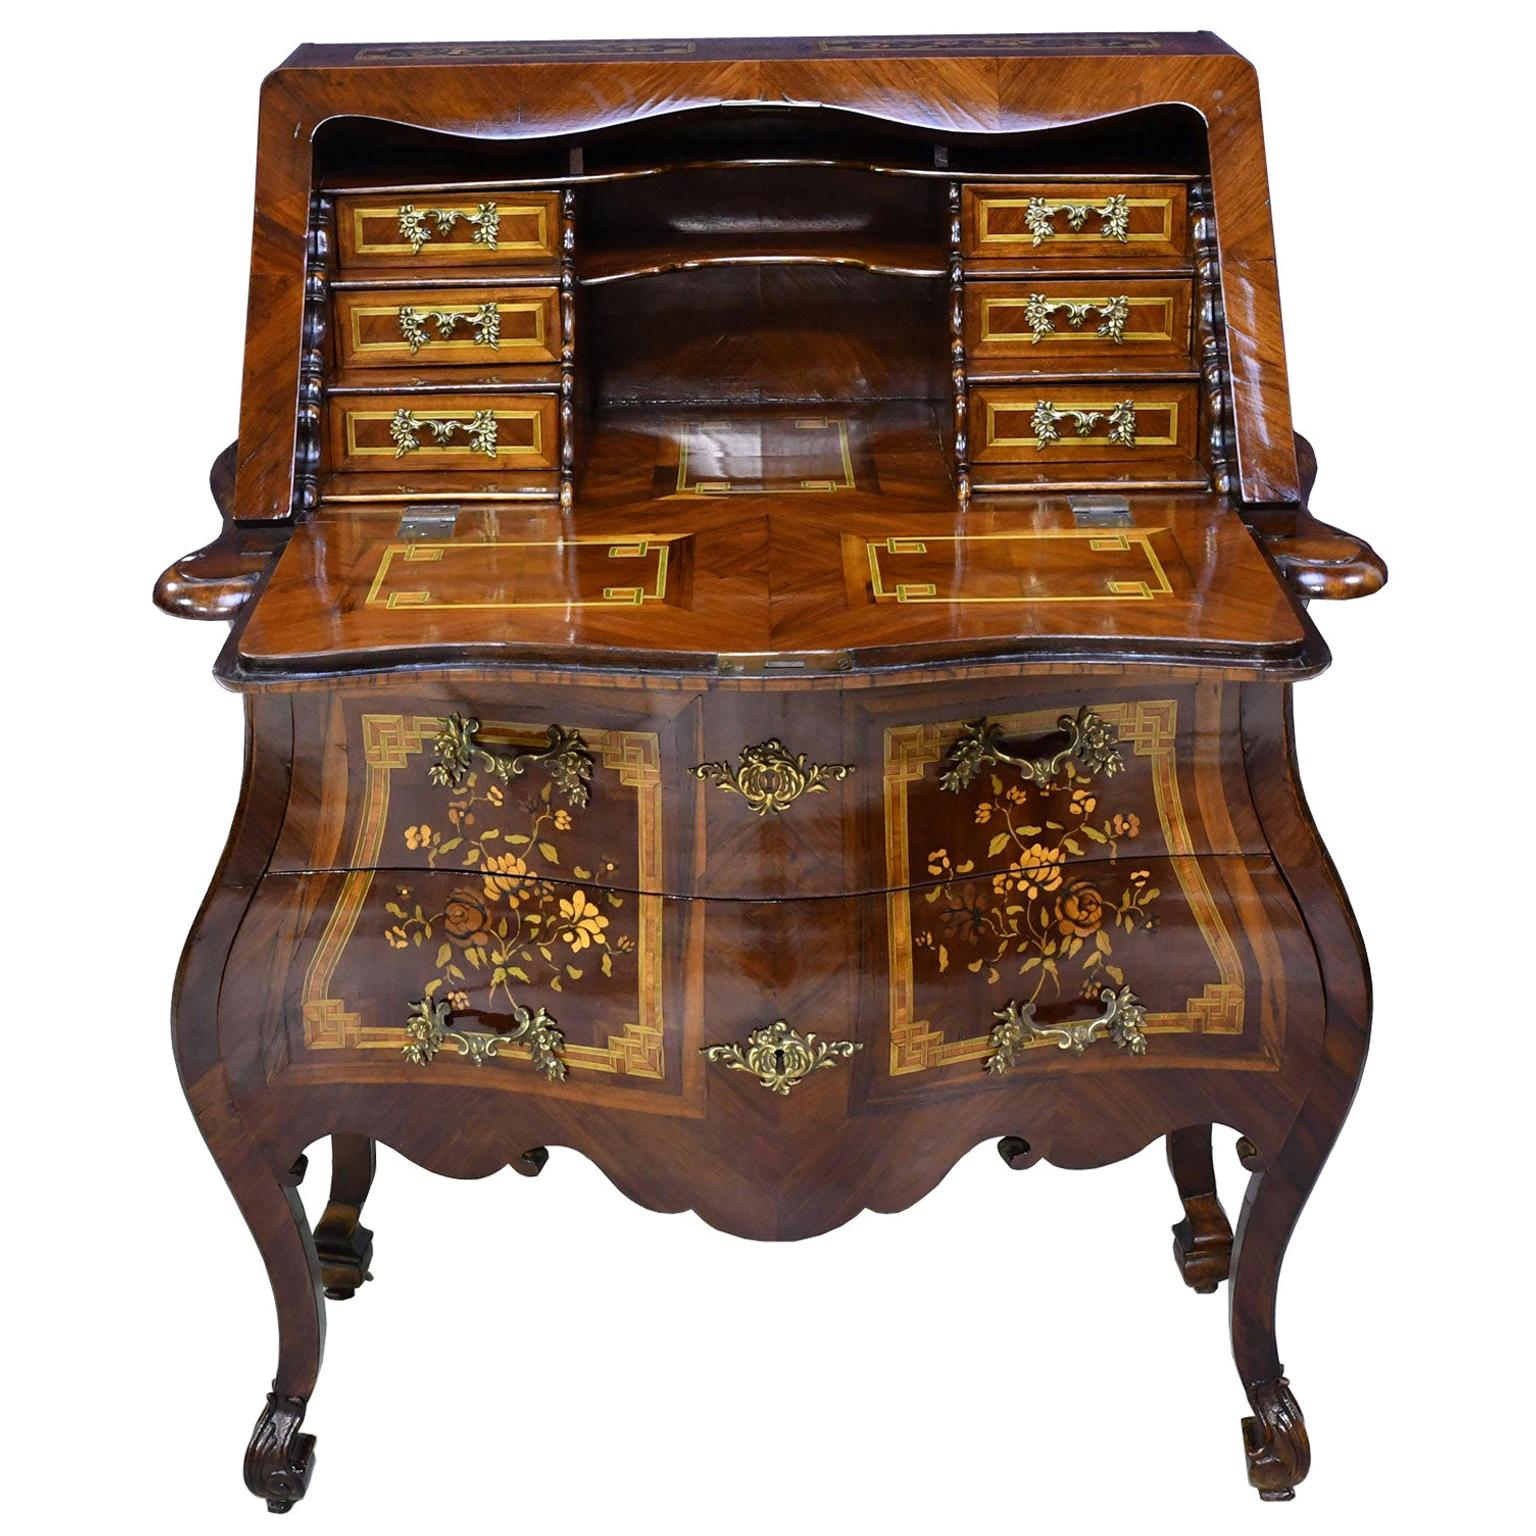 18th Century Flemish or German Rococo Bombe Secretary Desk with Marquetry